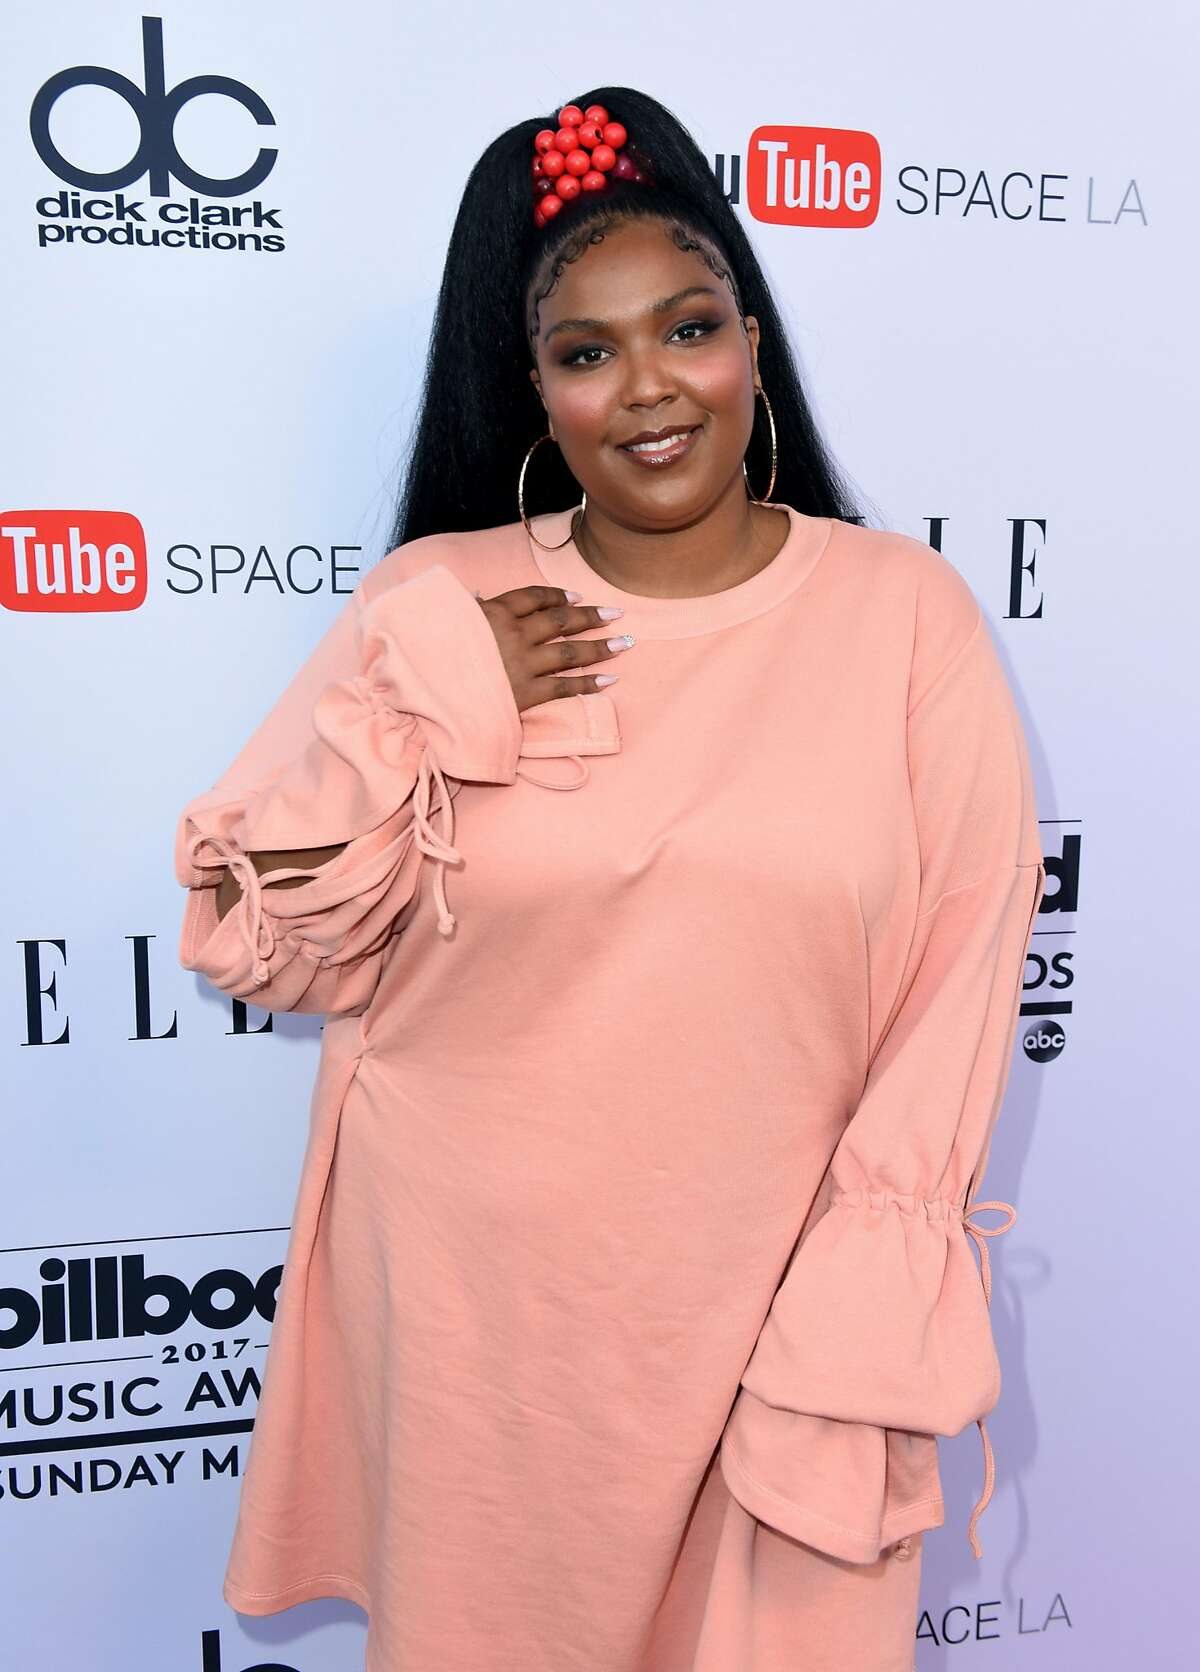 LOS ANGELES, CA - MAY 16: Singer Lizzo attends the '2017 Billboard Music Awards' And ELLE Present Women In Music At YouTube Space LA at YouTube Space LA on May 16, 2017 in Los Angeles, California. (Photo by Vivien Killilea/Getty Images for dick clark productions)